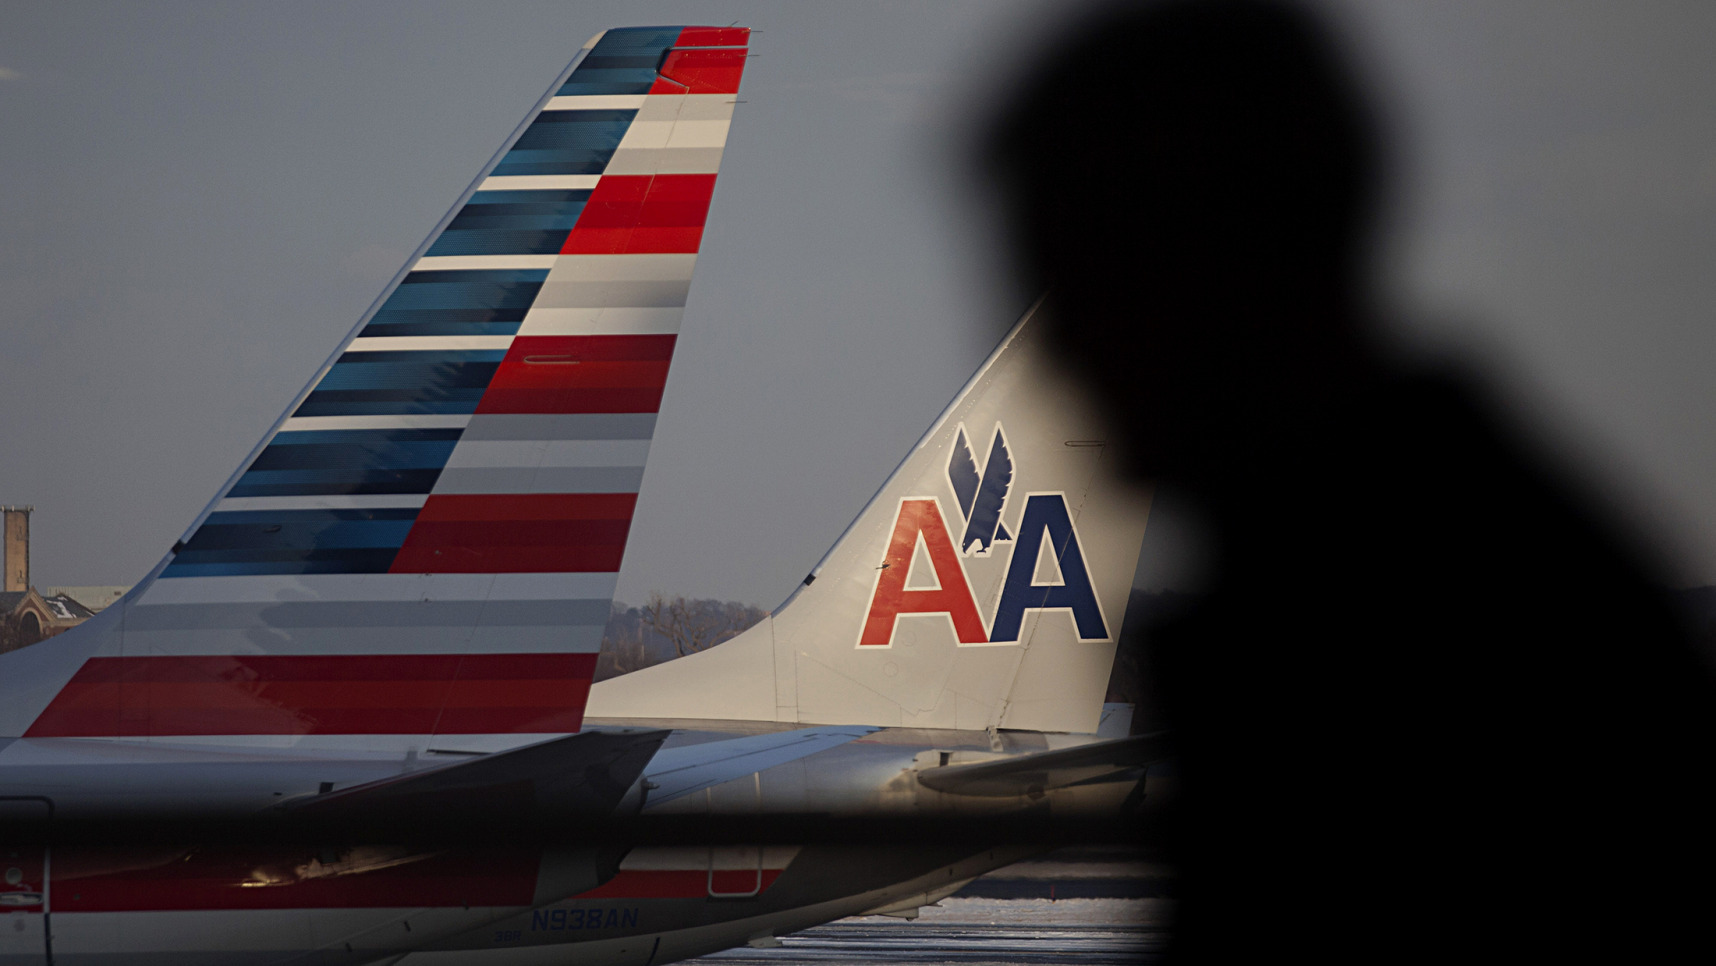 american airlines inc and us airways Get american airlines group inc (aal:nasdaq) real-time stock quotes, news and financial information from cnbc.